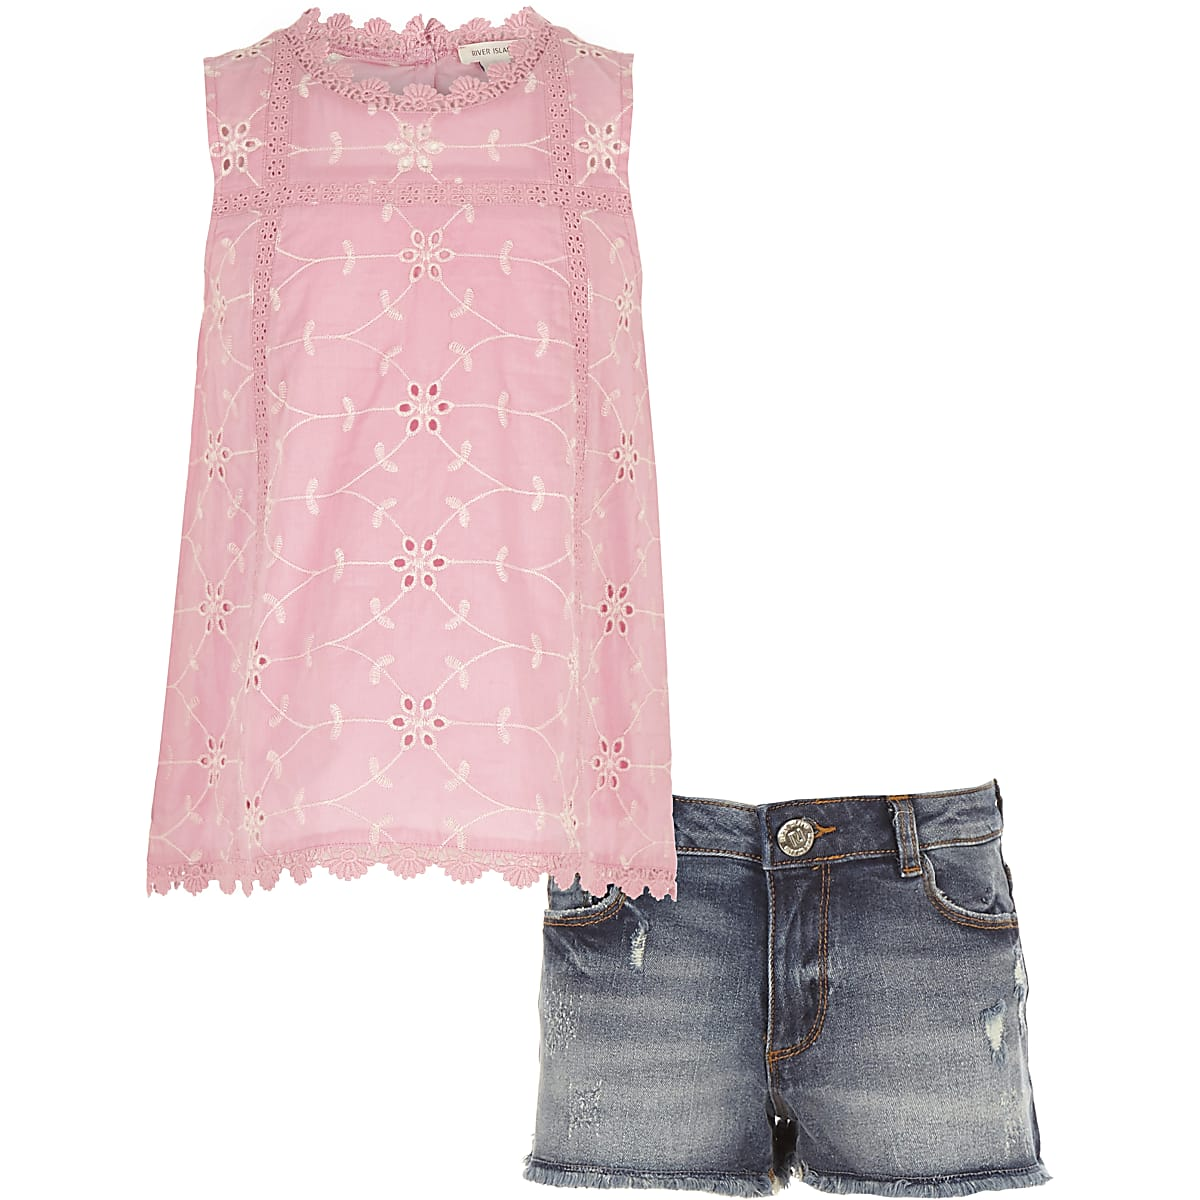 Girls pink broderie shell top outfit